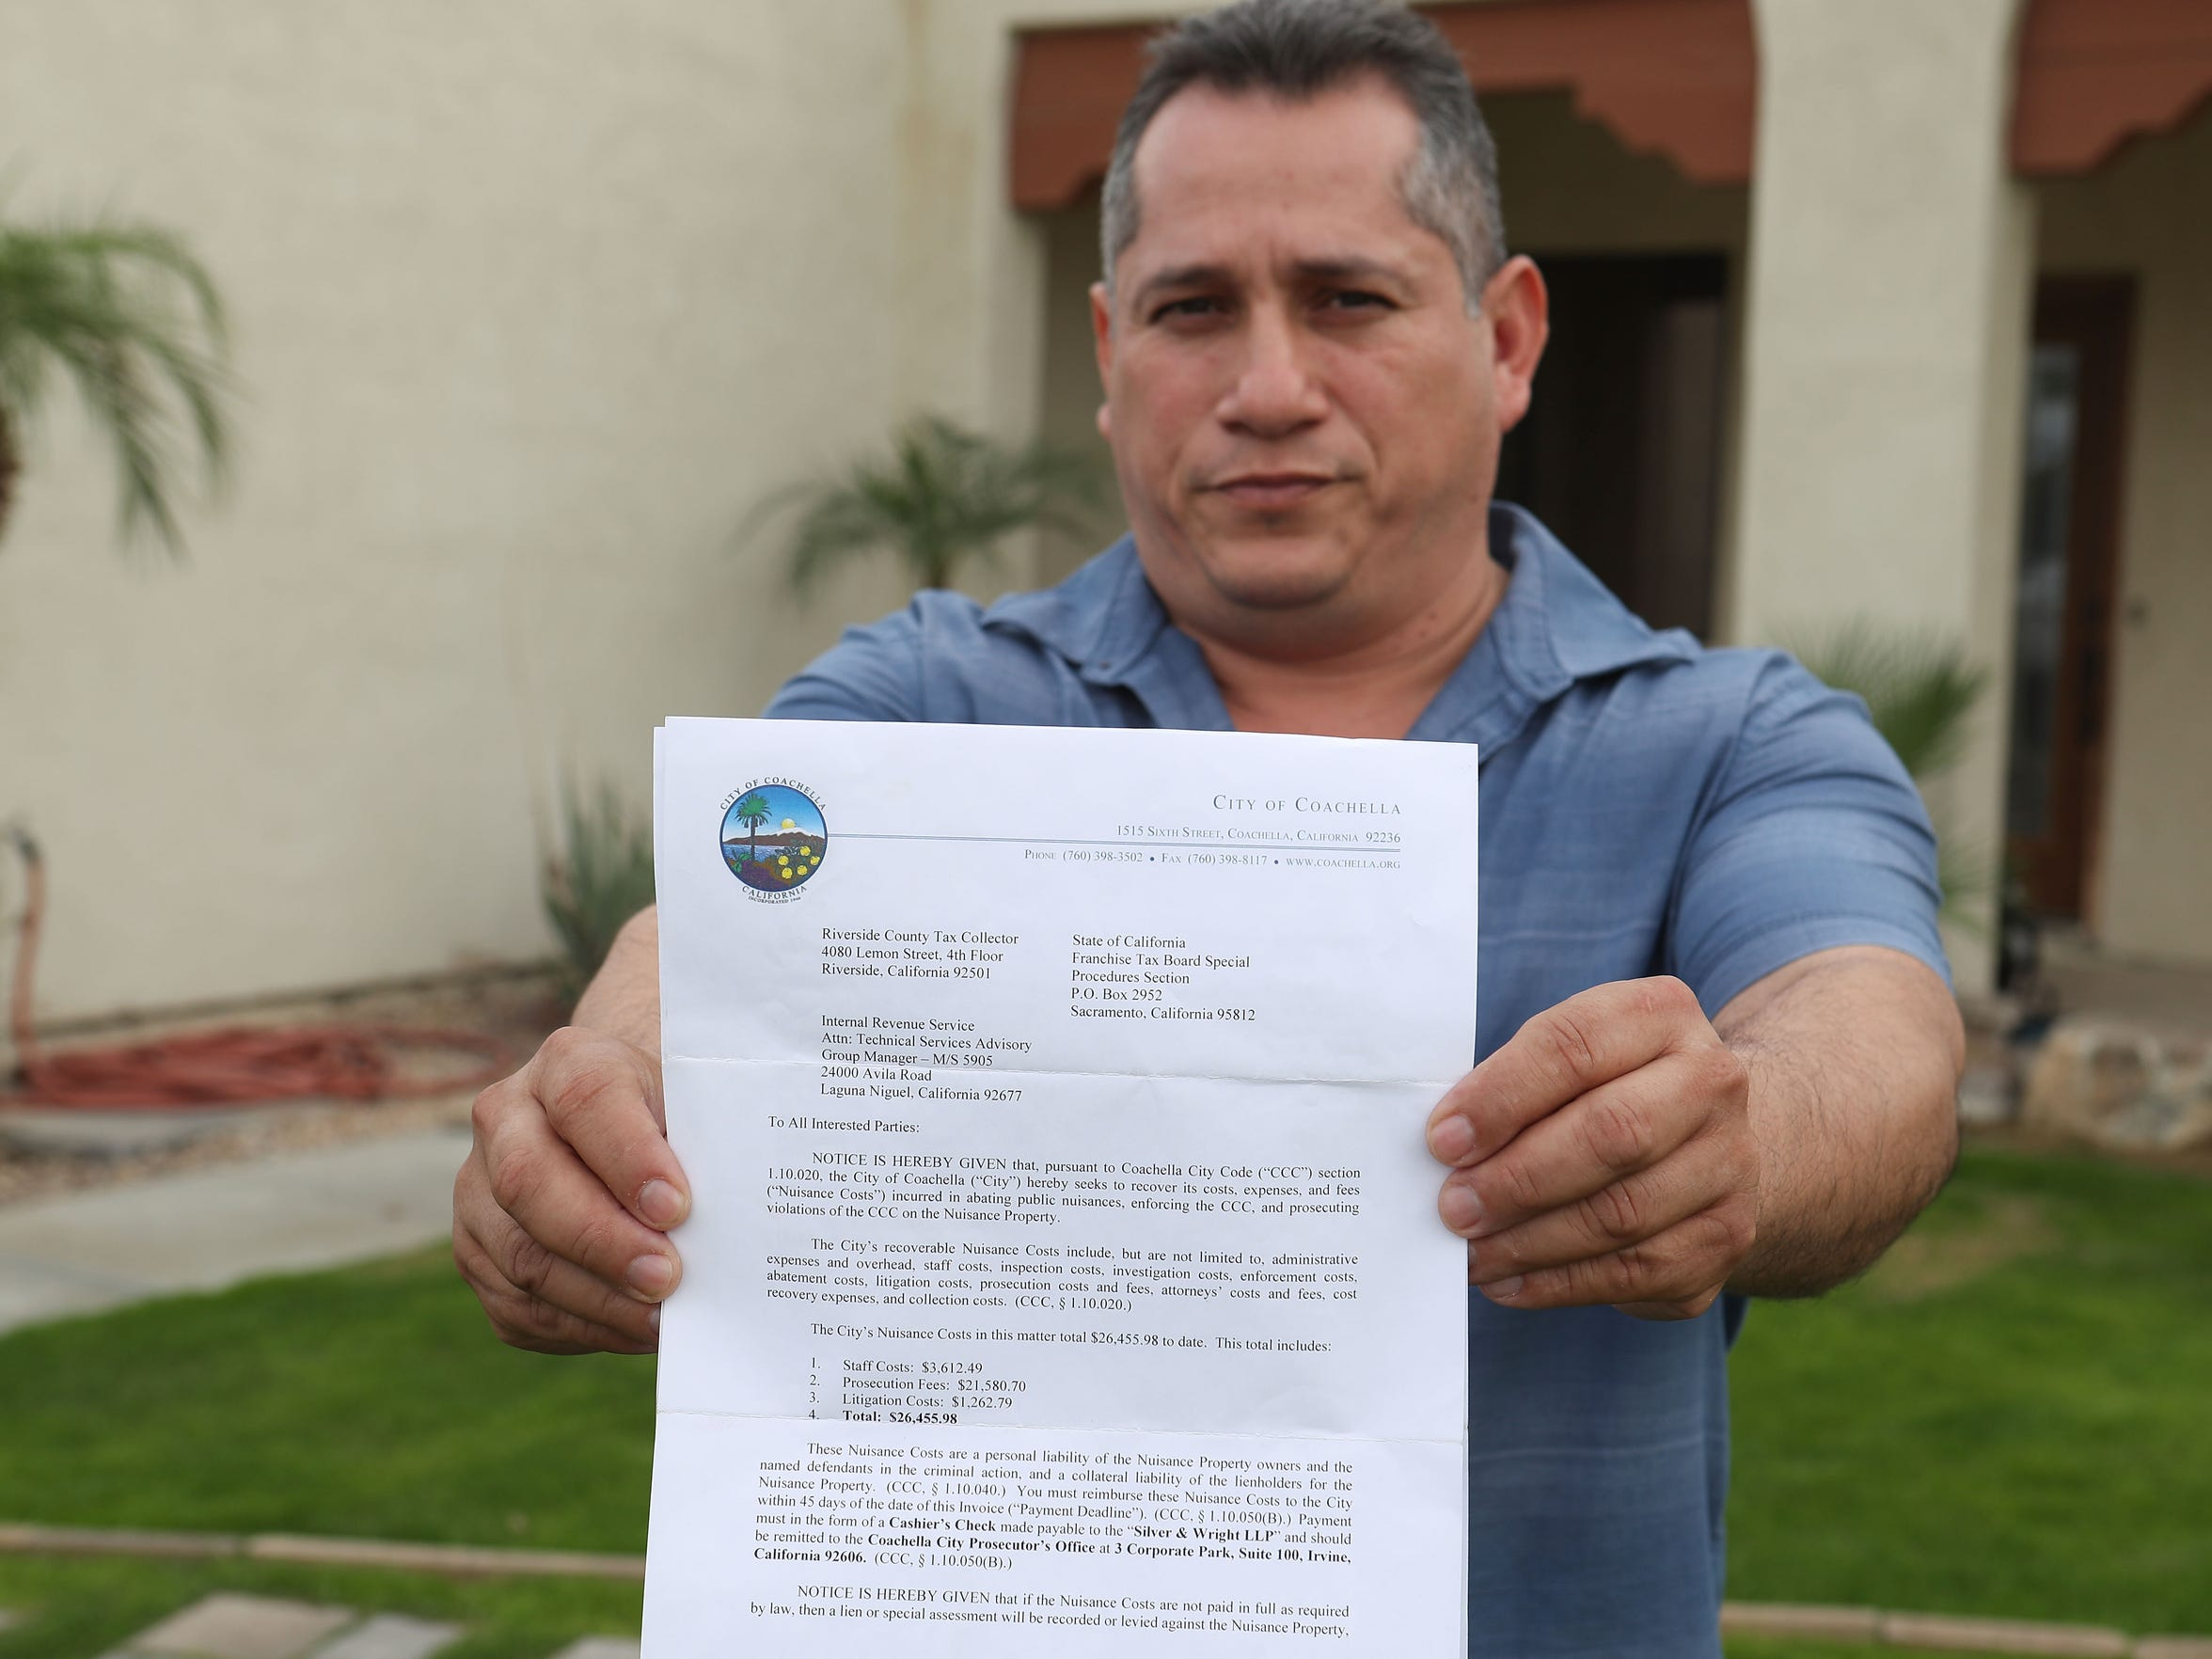 Cesar Garcia, 41, of Coachella, built an addition on to his home without proper permits. Now, Coachella City Hall wants him to pay $31K to prosecute himself.